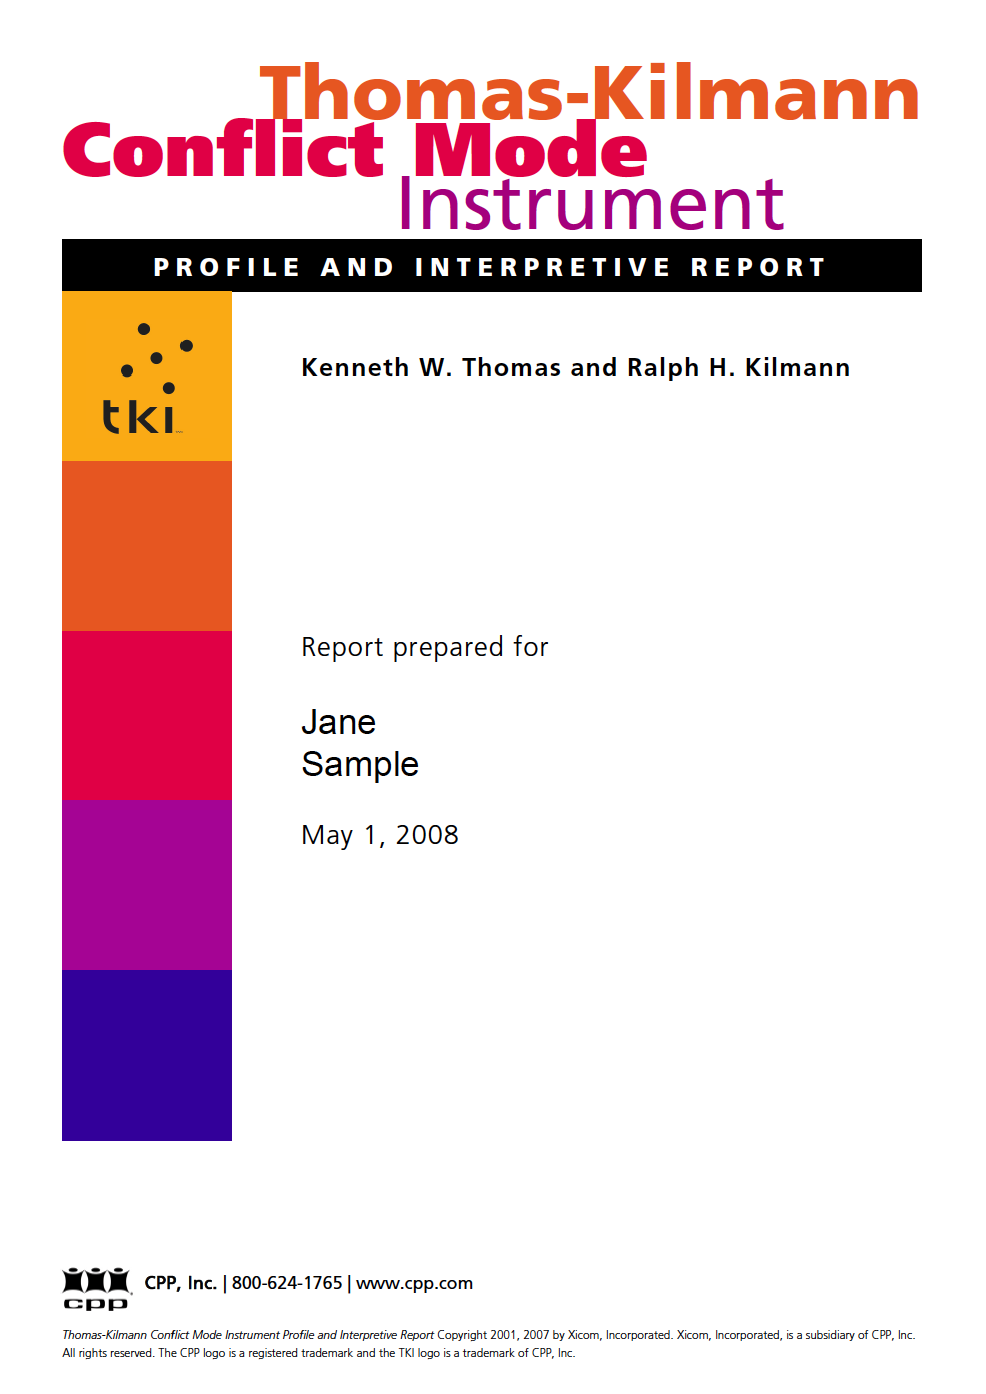 Thomas-Kilmann Instrument TKI Report